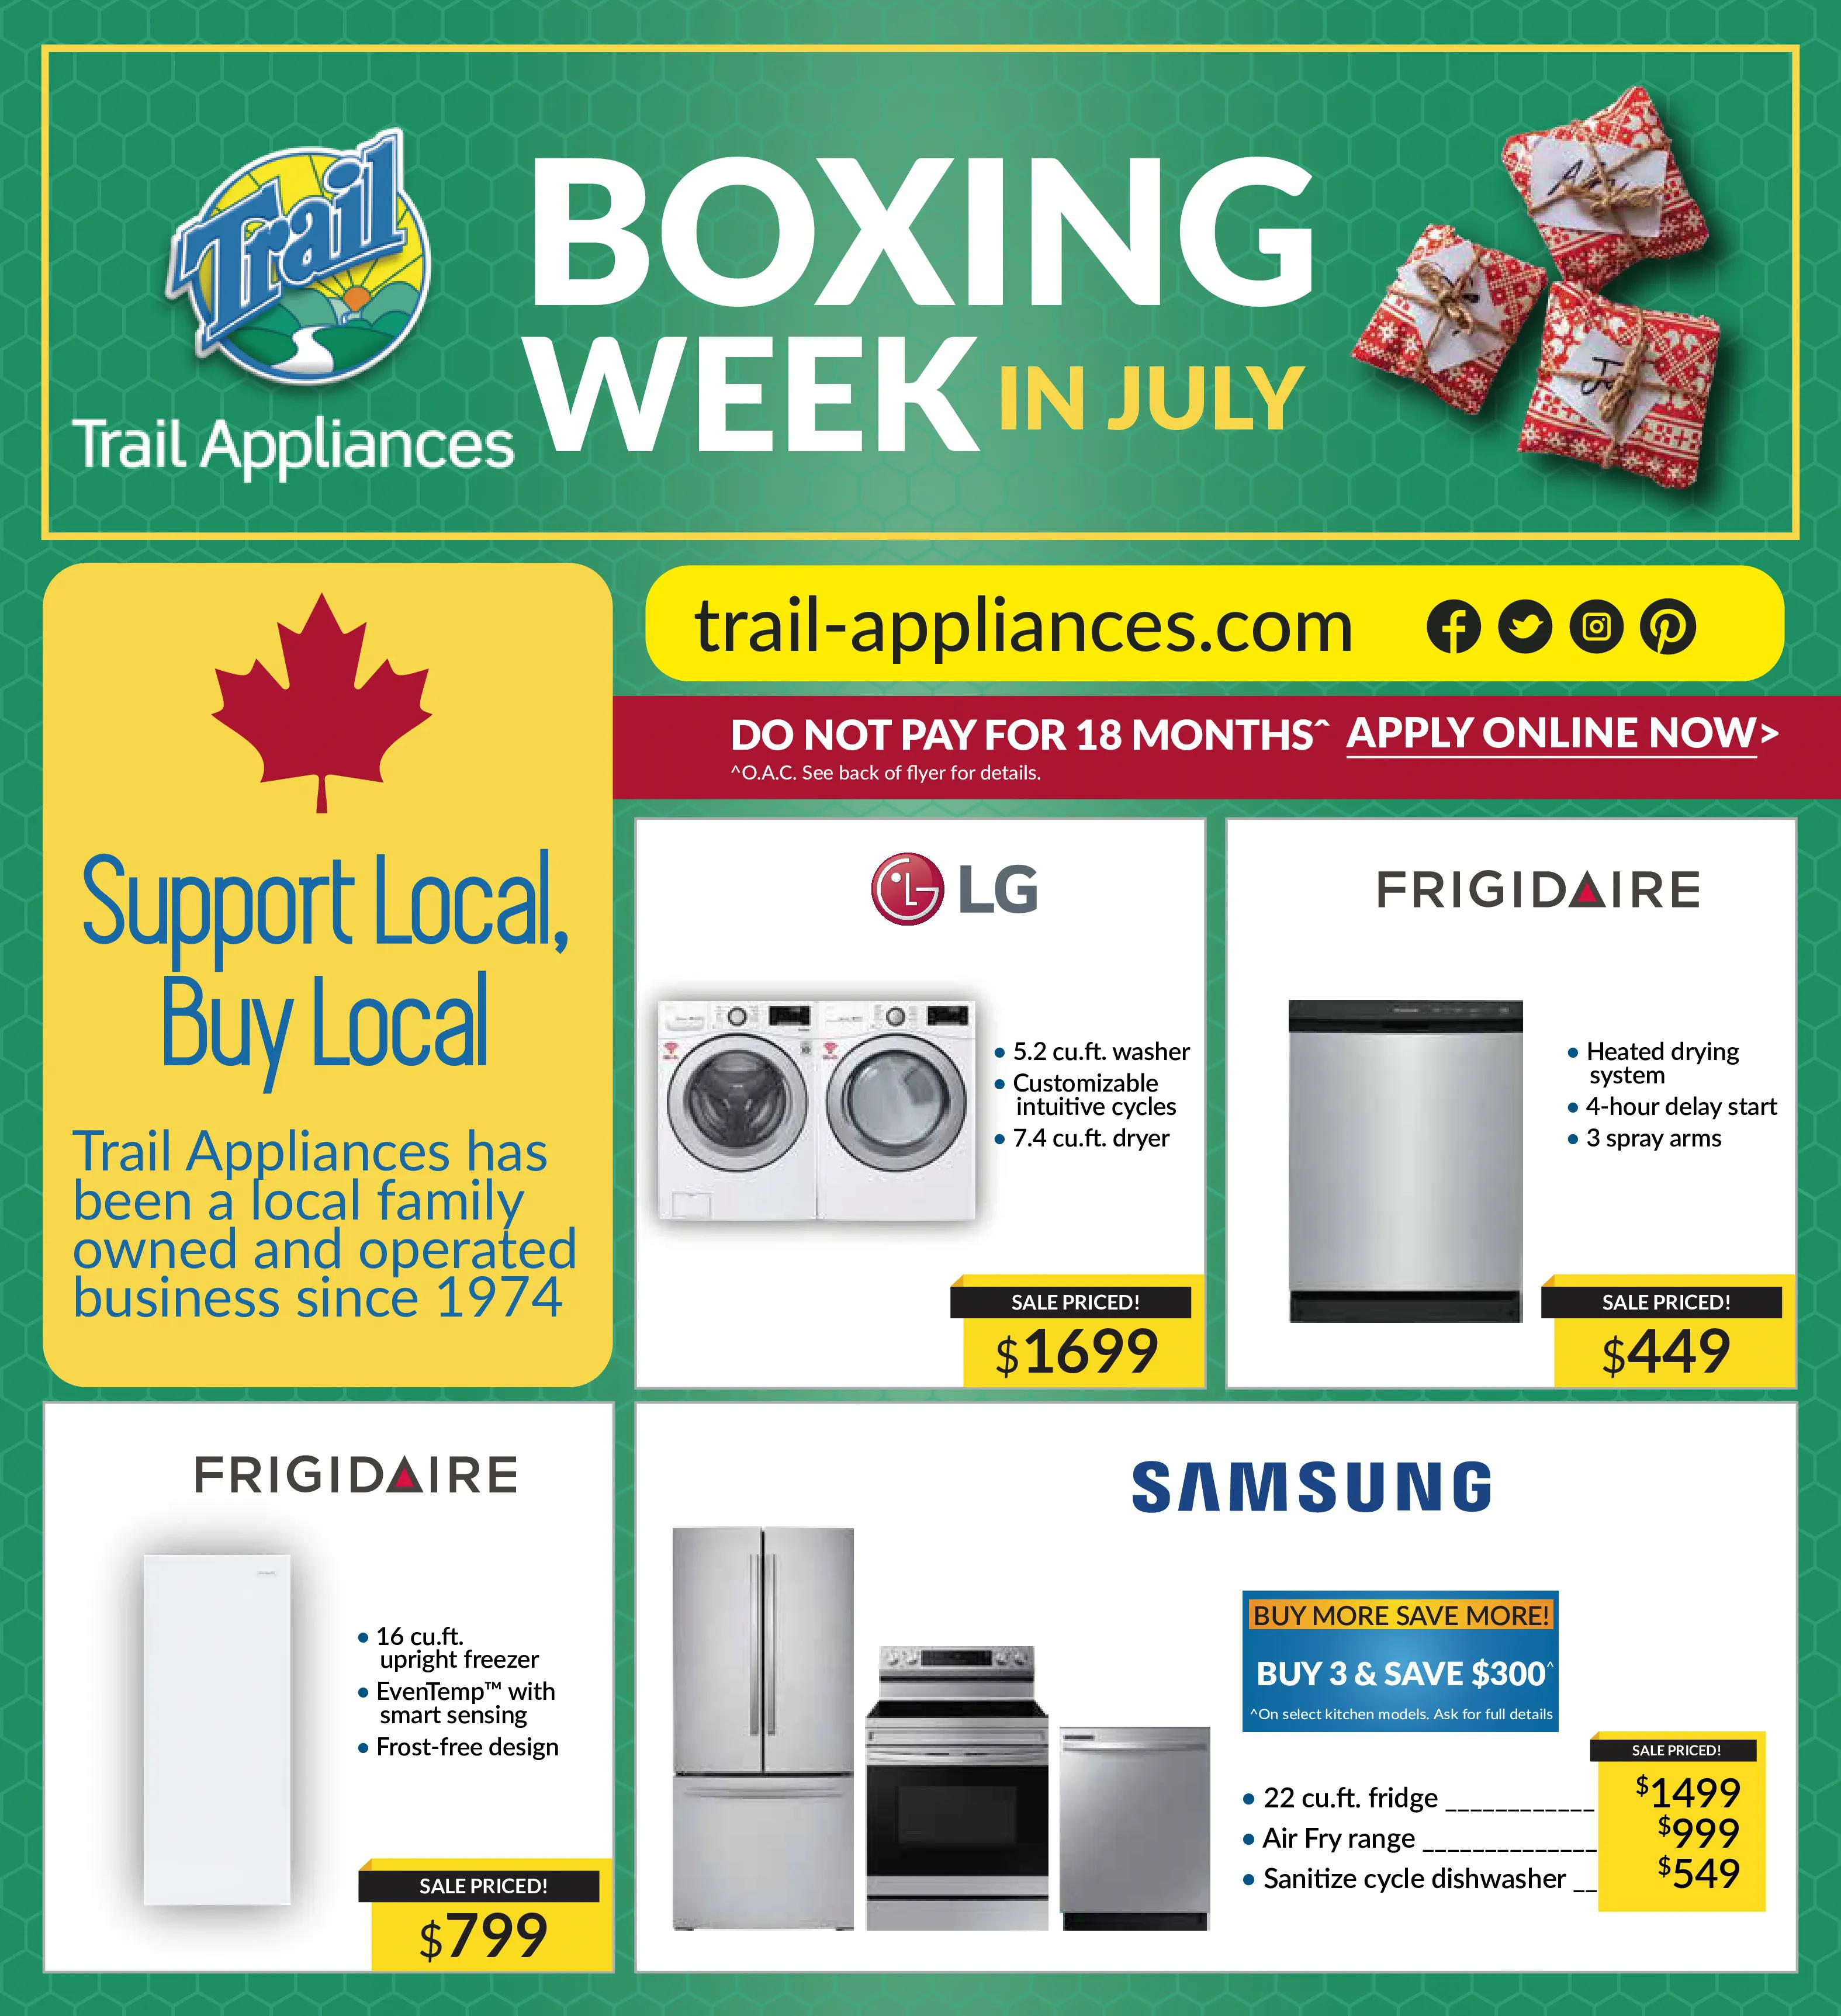 Trail Appliances - Weekly Flyer Specials